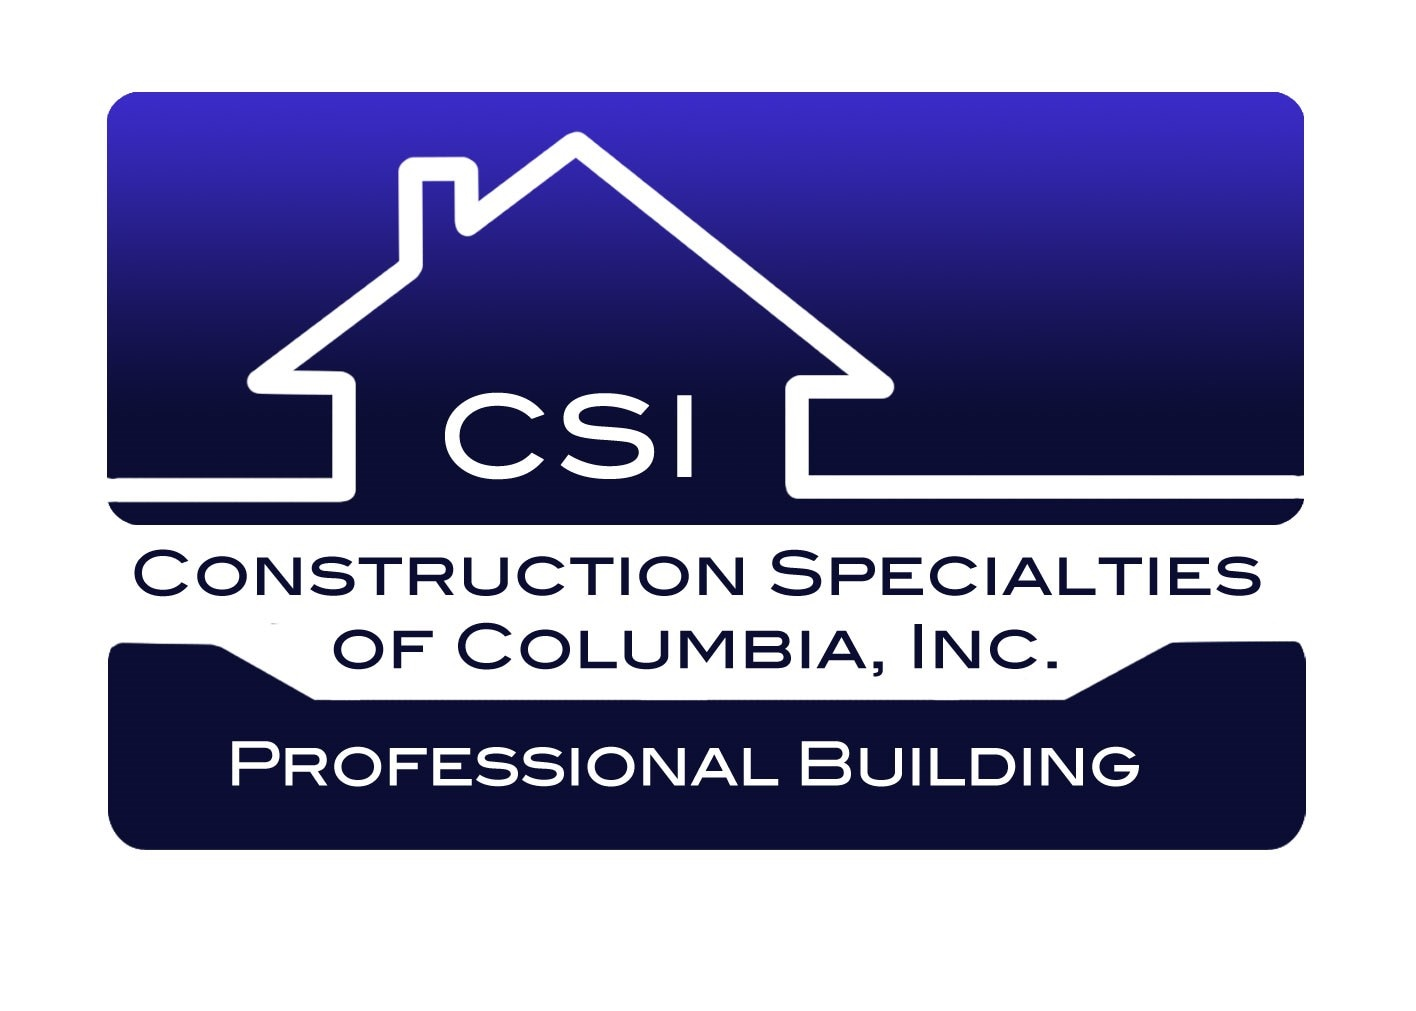 Construction Specialties of Columbia Inc